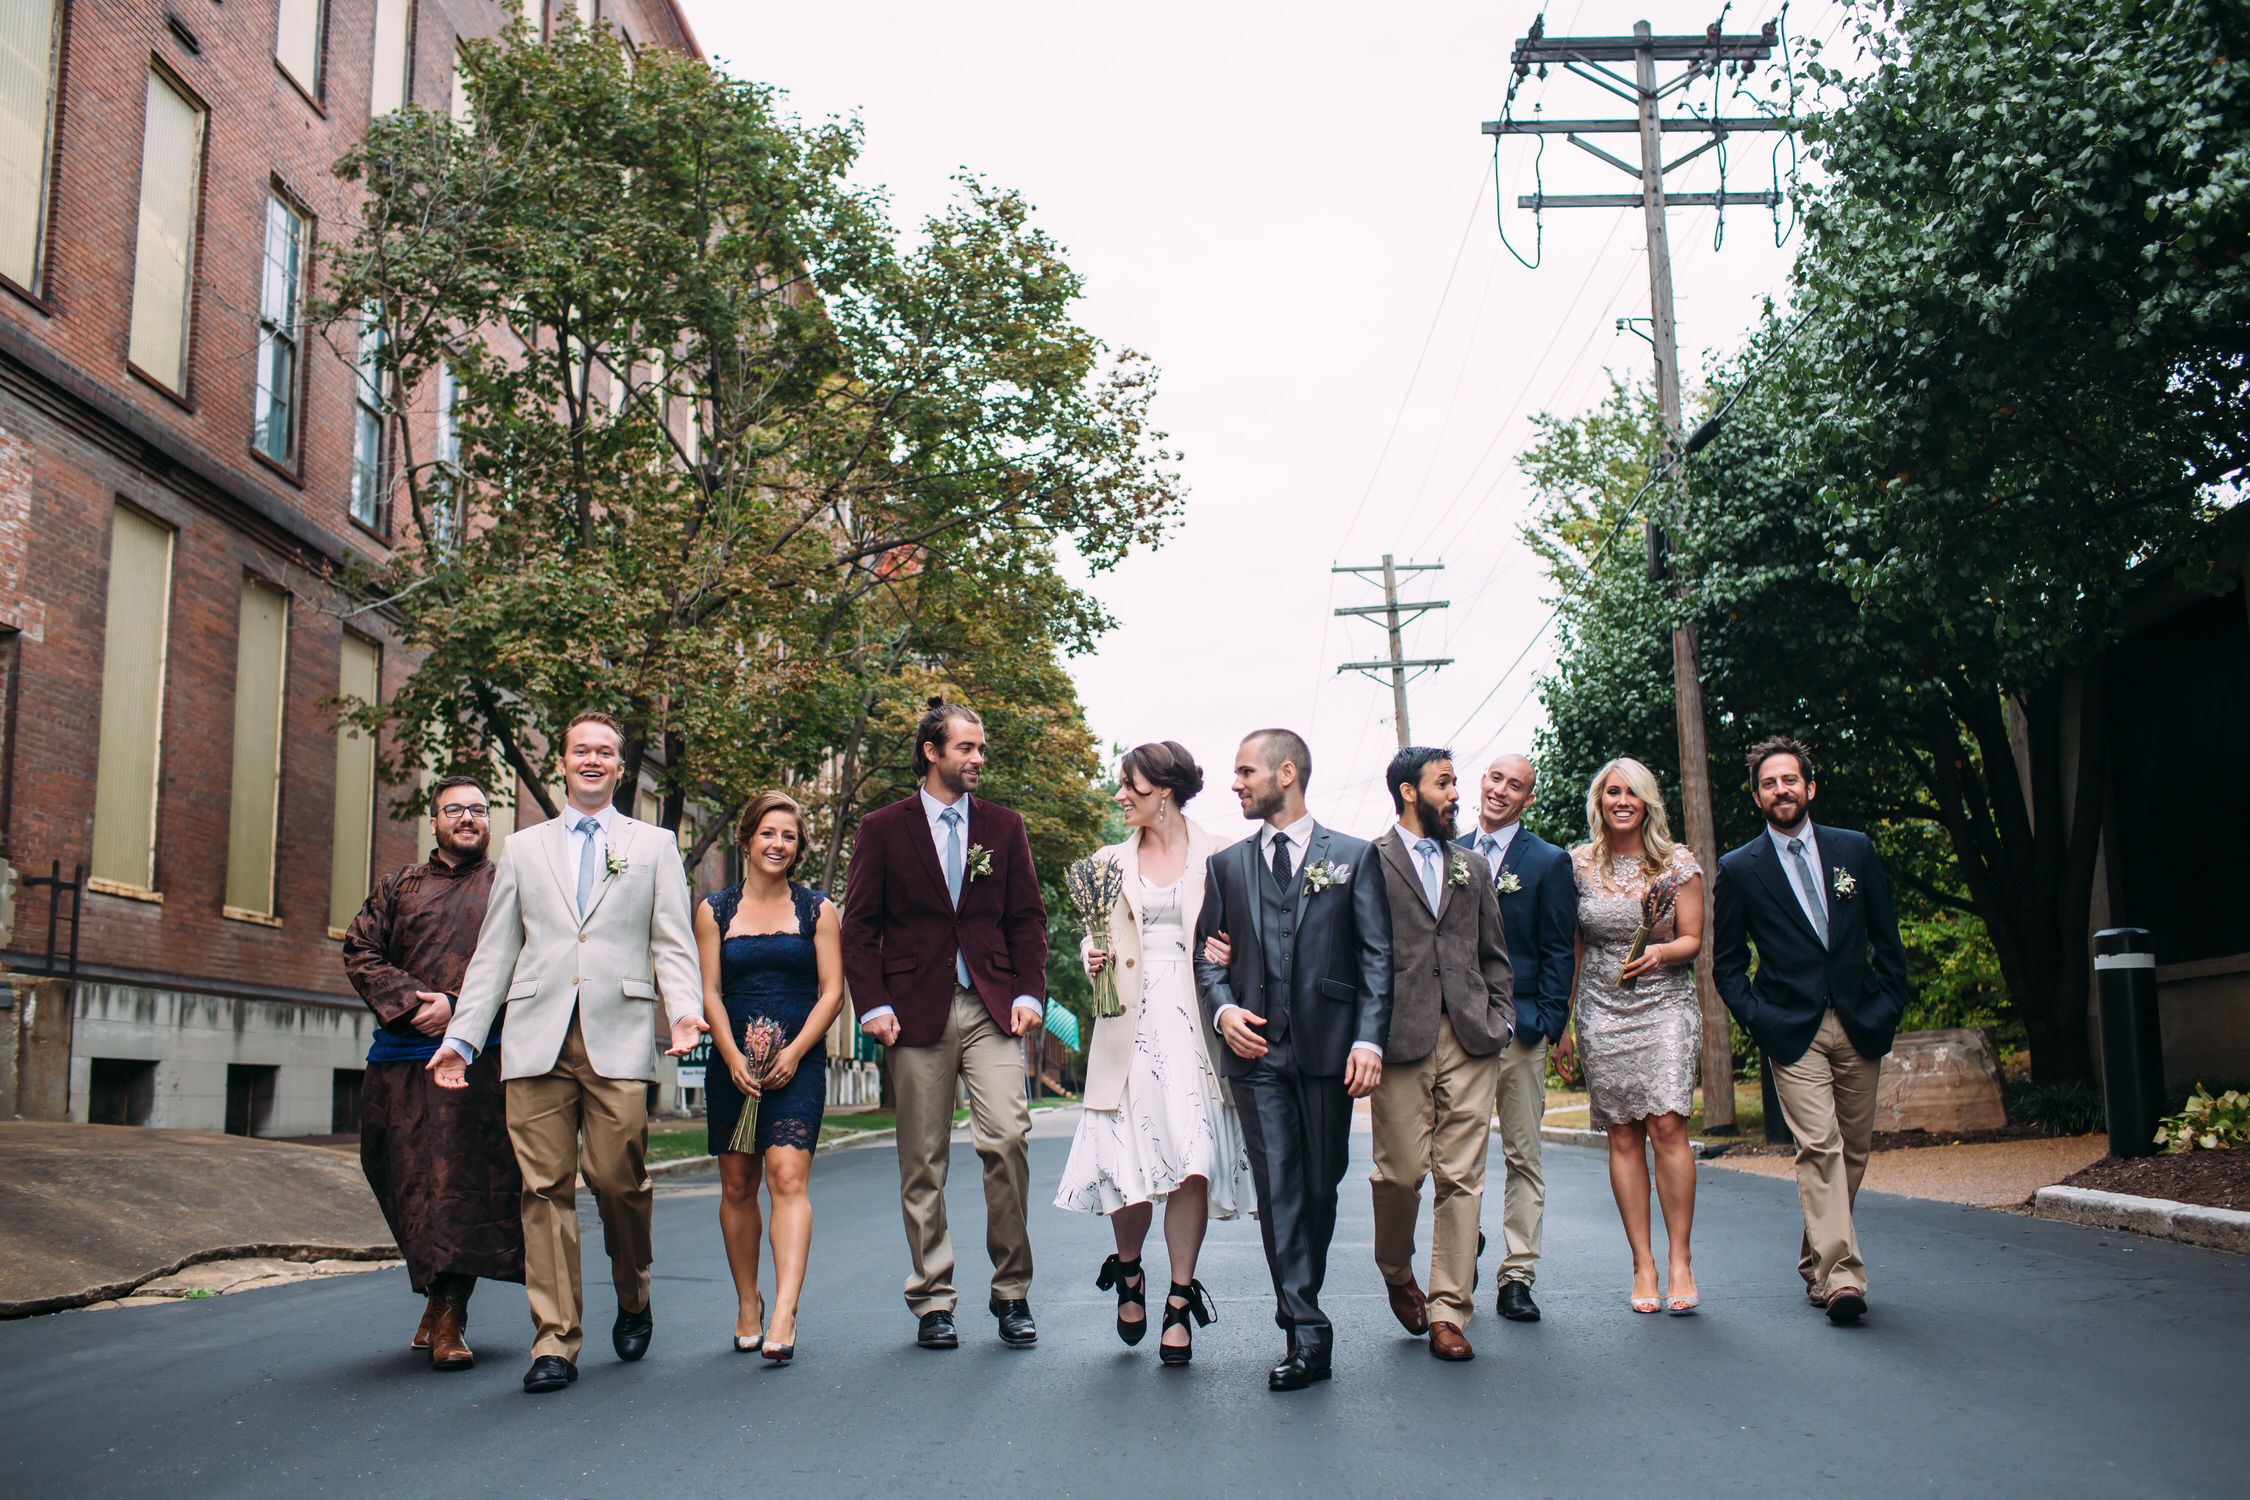 Wedding party photos, group photos at a wedding, relaxed wedding photos, Seattle Wedding Photographer, alternative wedding